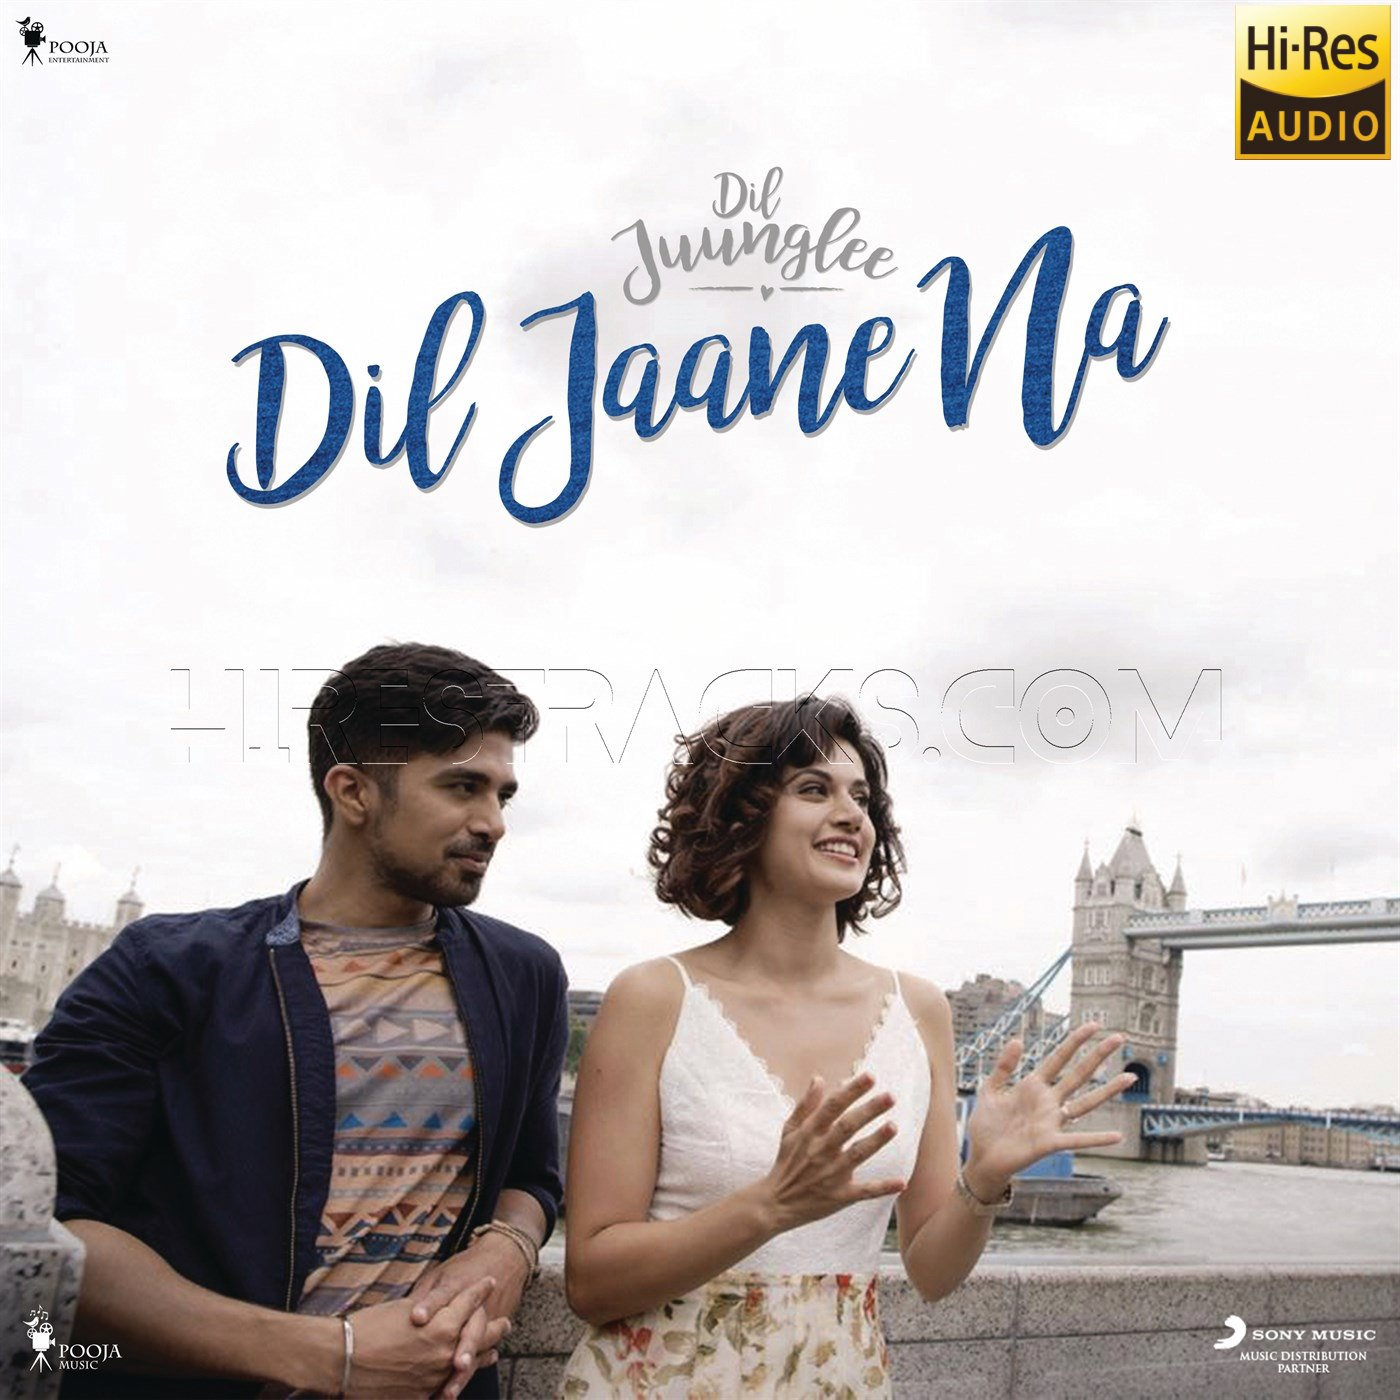 Dil Jaane Na (From Dil Juunglee) – Single (2018) (24 BIT-96 KHZ)